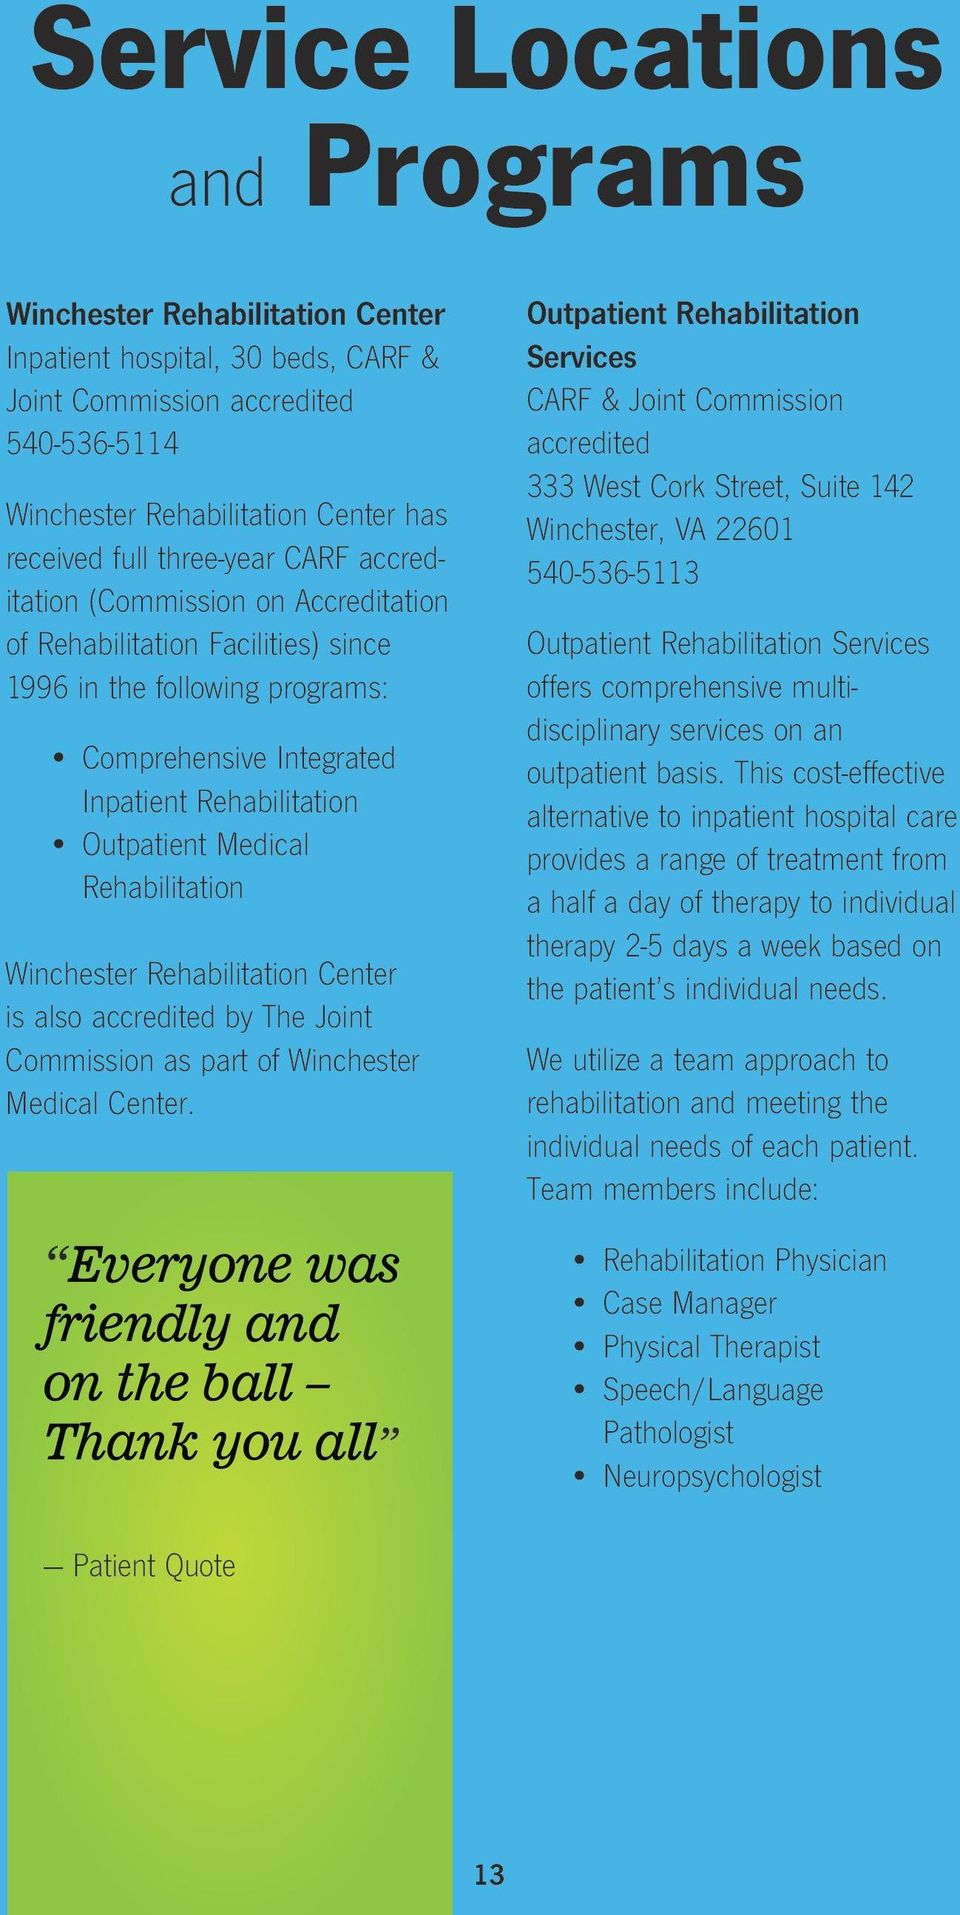 Rehabilitation Winchester Rehabilitation Center is also accredited by The Joint Commission as part of Winchester Medical Center.